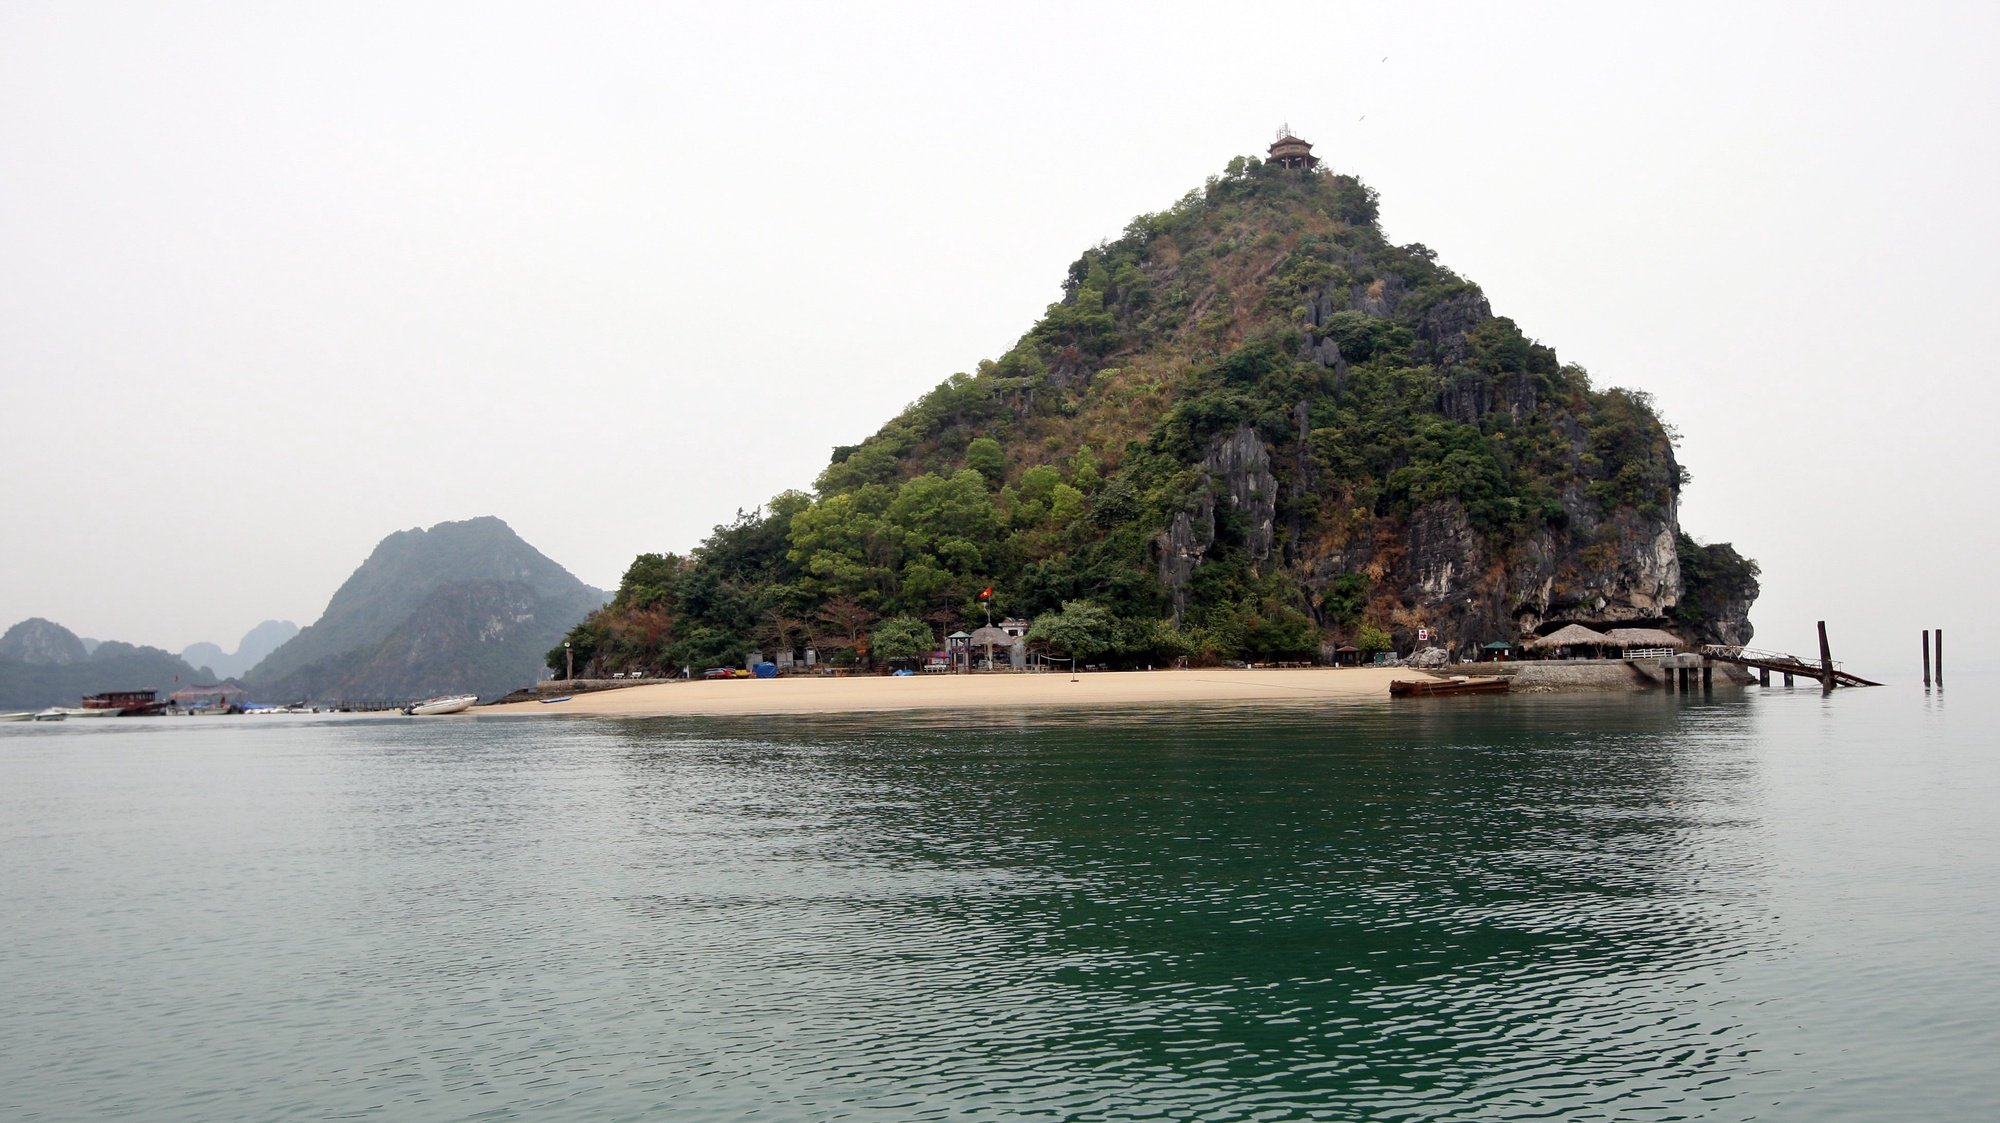 epa02589163 A view of Titop island, where nearby the tourist boat 'Dream Voyage' sunk, in Ha Long Bay, in northern Vietnam, 18 February 2011. Vietnamese police detained for questioning the captain and four crew members involved in a boat tragedy that left 12 tourists dead the previous day. The accident occurred on 17 February at Ha Long Bay when a tourist boat carrying 27 people sank. Nguyen Khuong Duy, a Vietnamese Australian, one of 15 survivors in the tragedy told local media the accident happened when people were still sleeping in the boat. Those on the top deck had time to escape before the boat sank.  EPA/LUONG THAI LINH